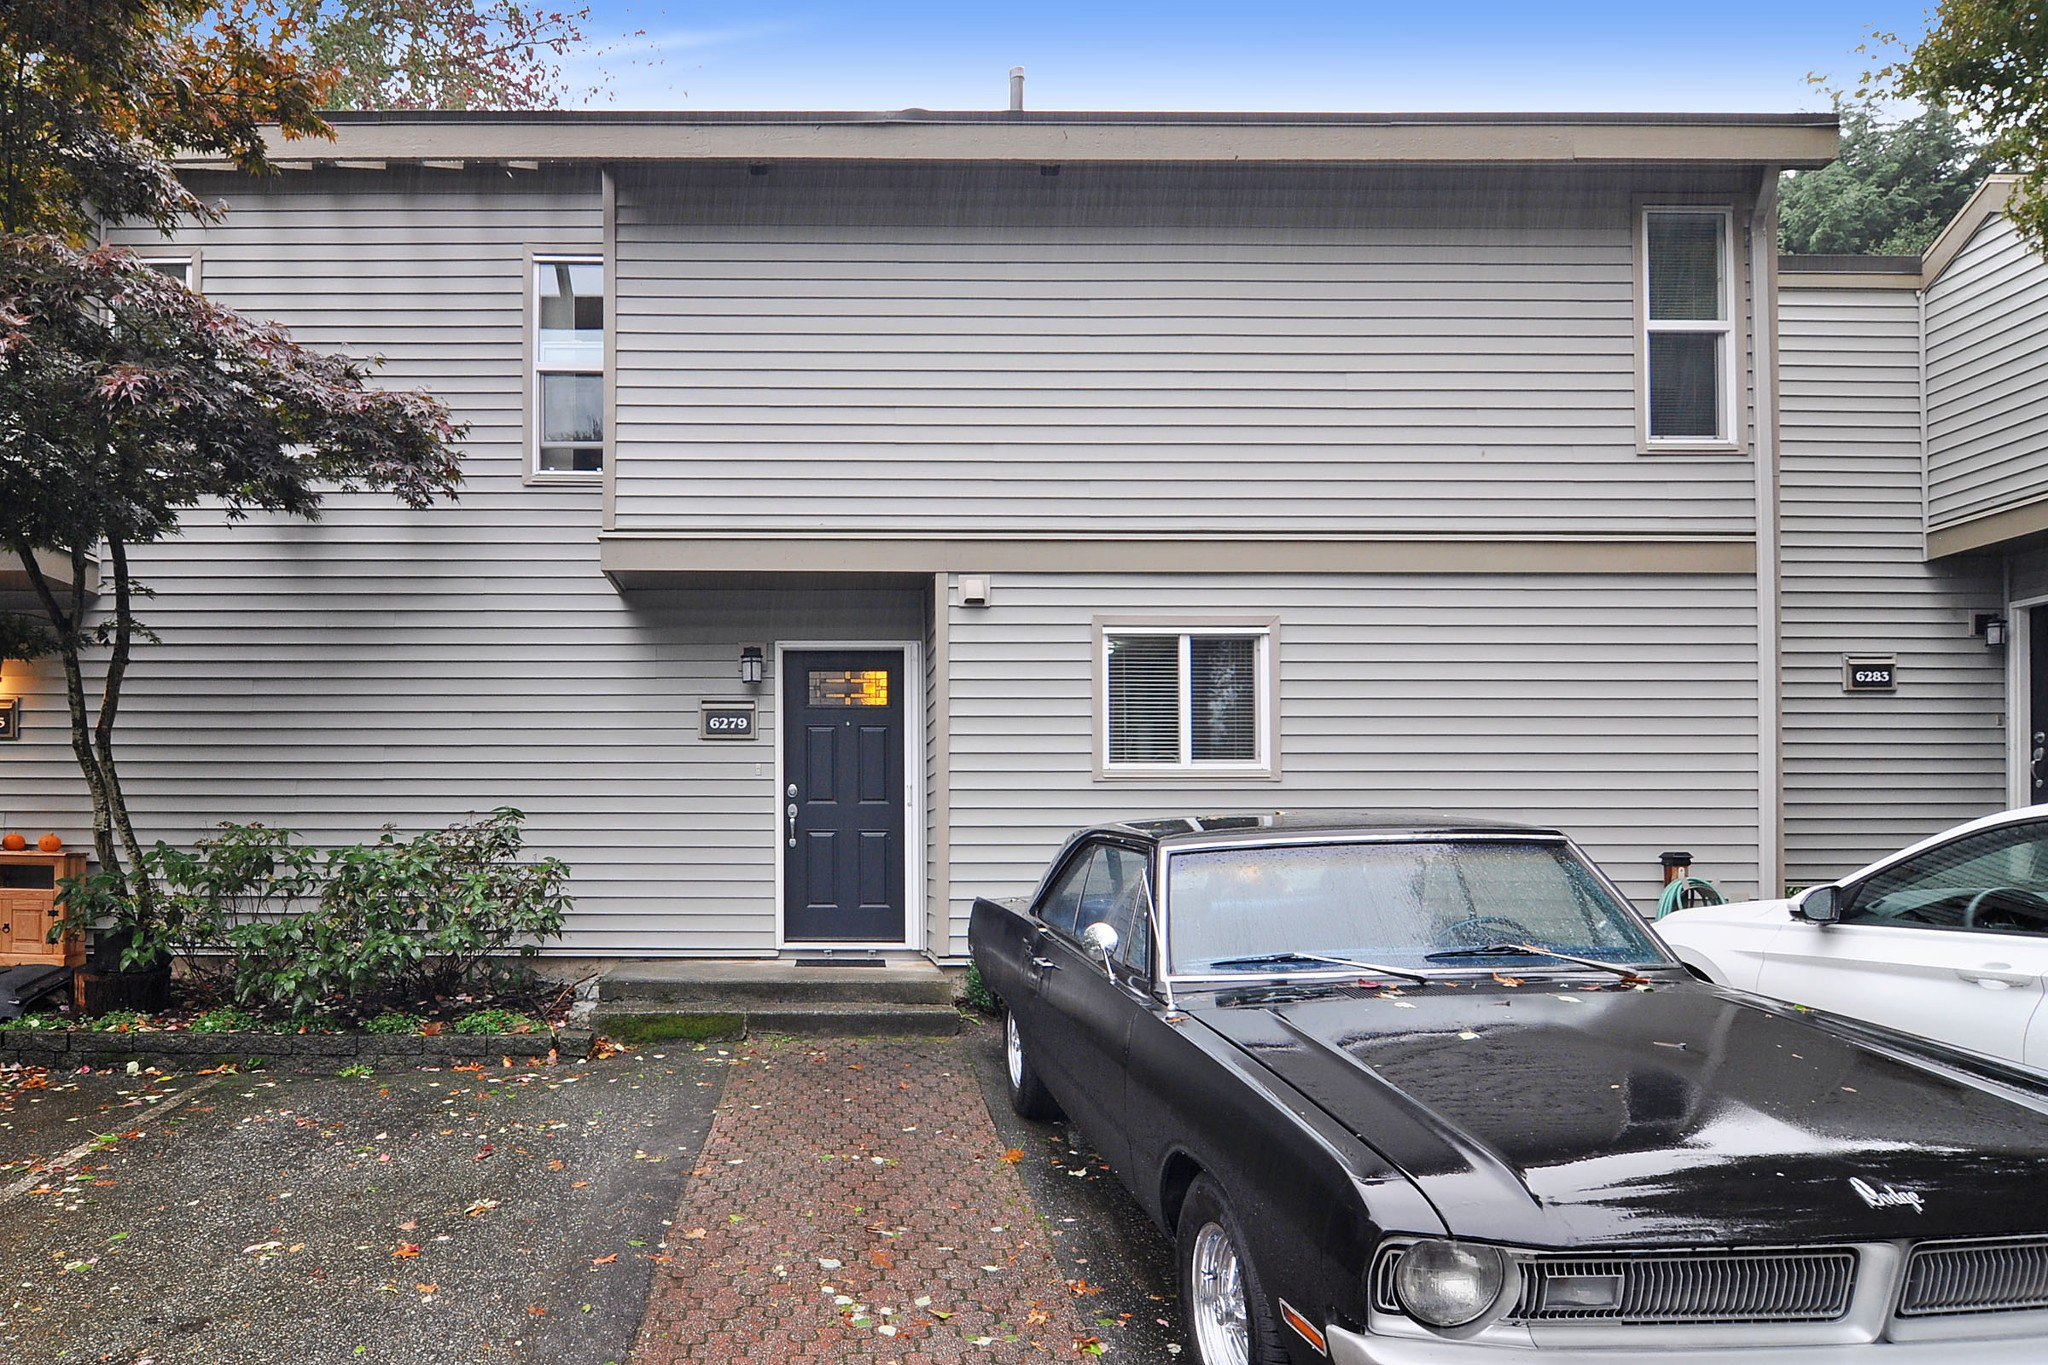 """Main Photo: 6279 W GREENSIDE Drive in Surrey: Cloverdale BC Townhouse for sale in """"GREENSIDE ESTATES"""" (Cloverdale)  : MLS®# R2509457"""